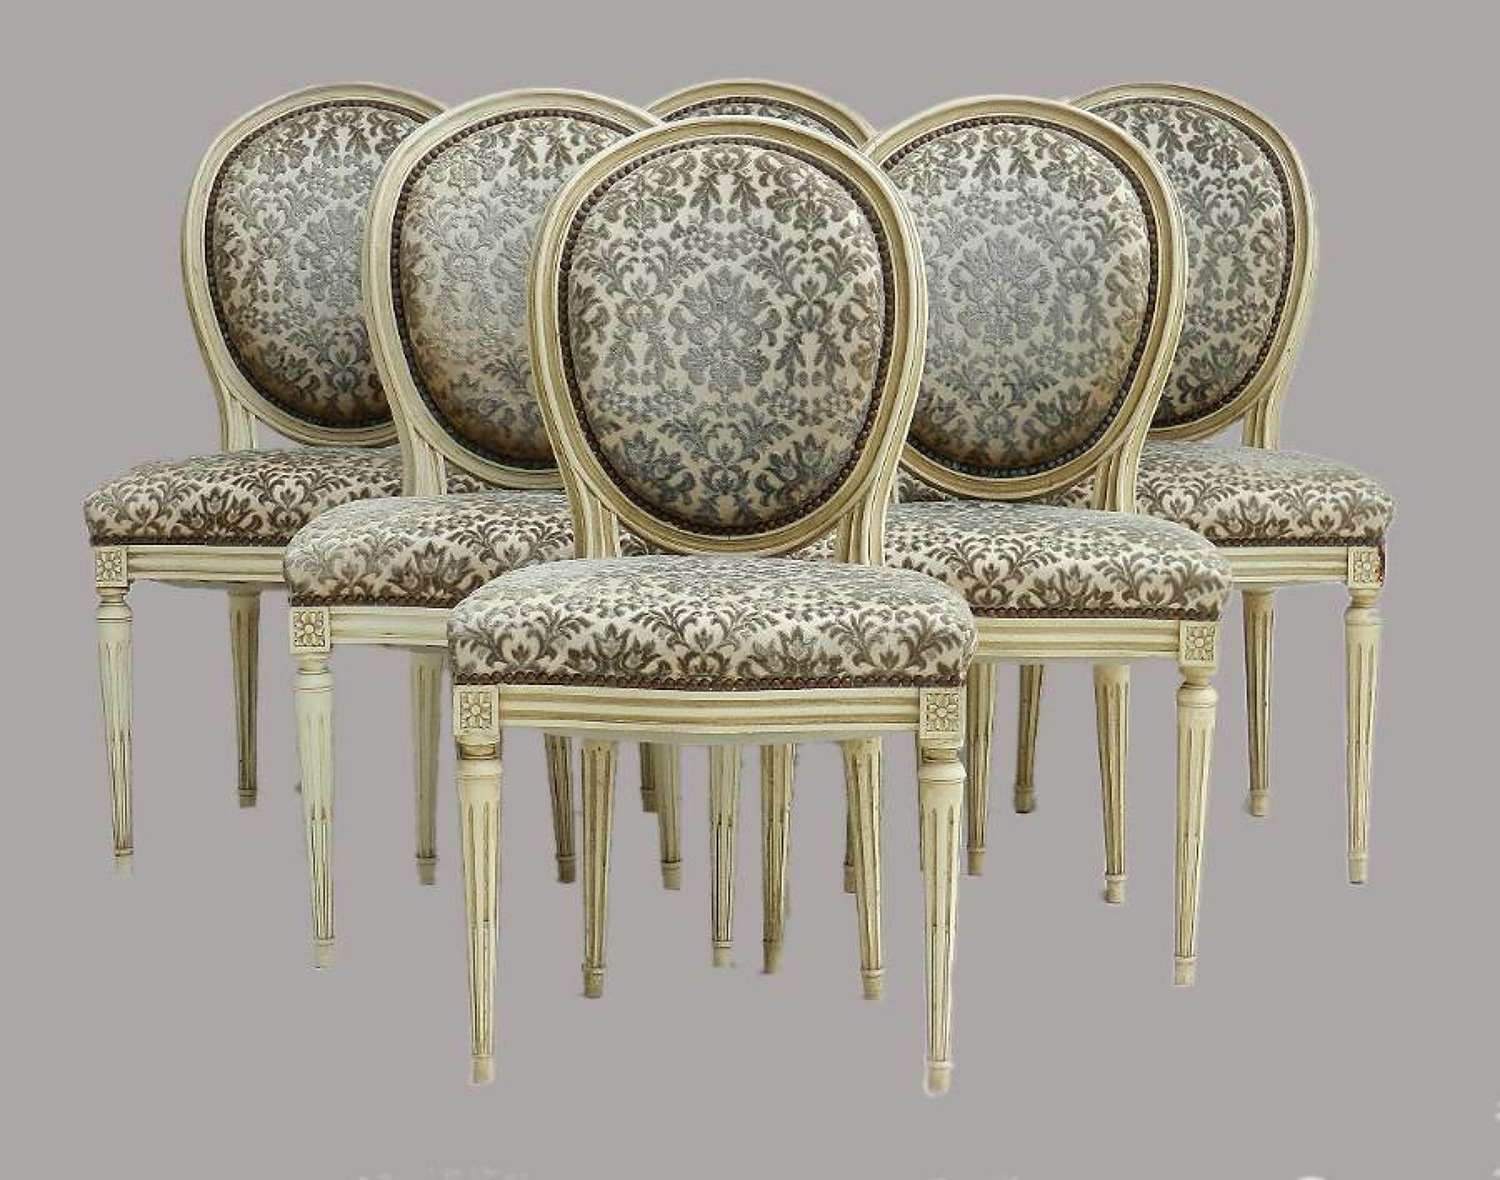 6 French Dining Chairs Medallion to recover/restore